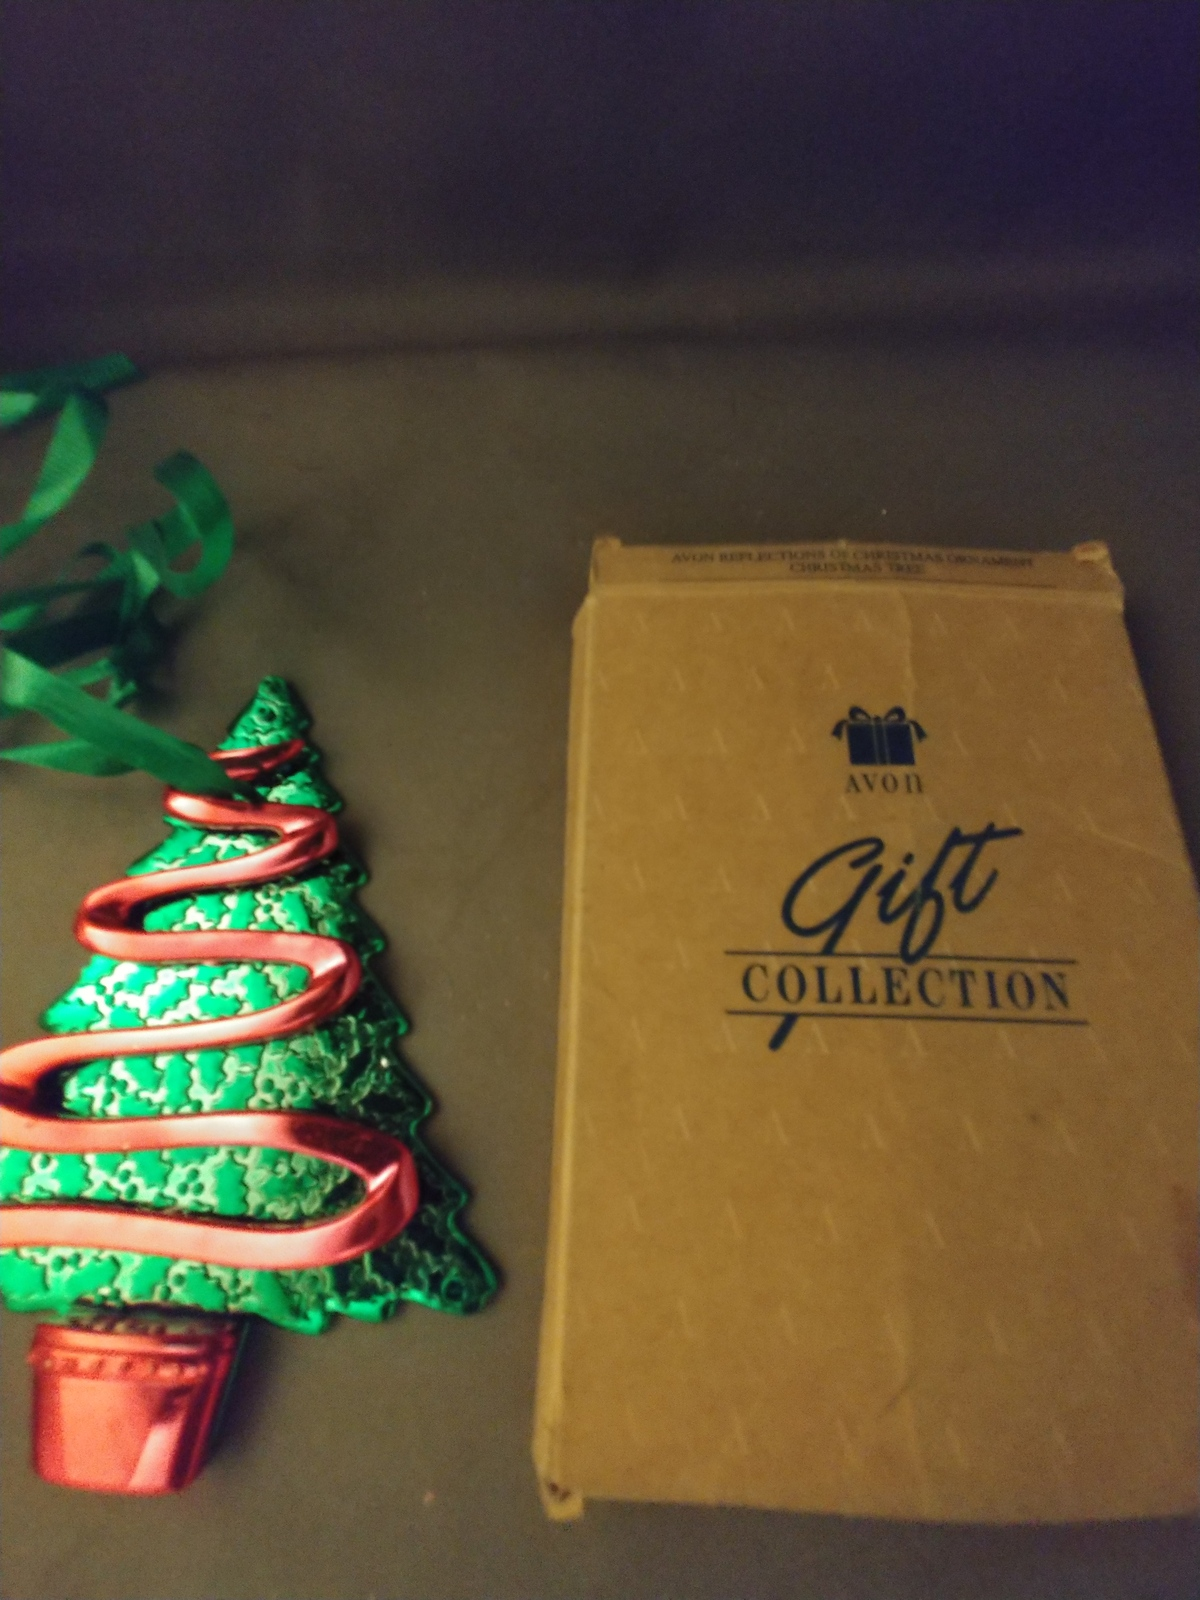 AVON Gift Collection Reflections of Christmas Ornament - Christmas Tree